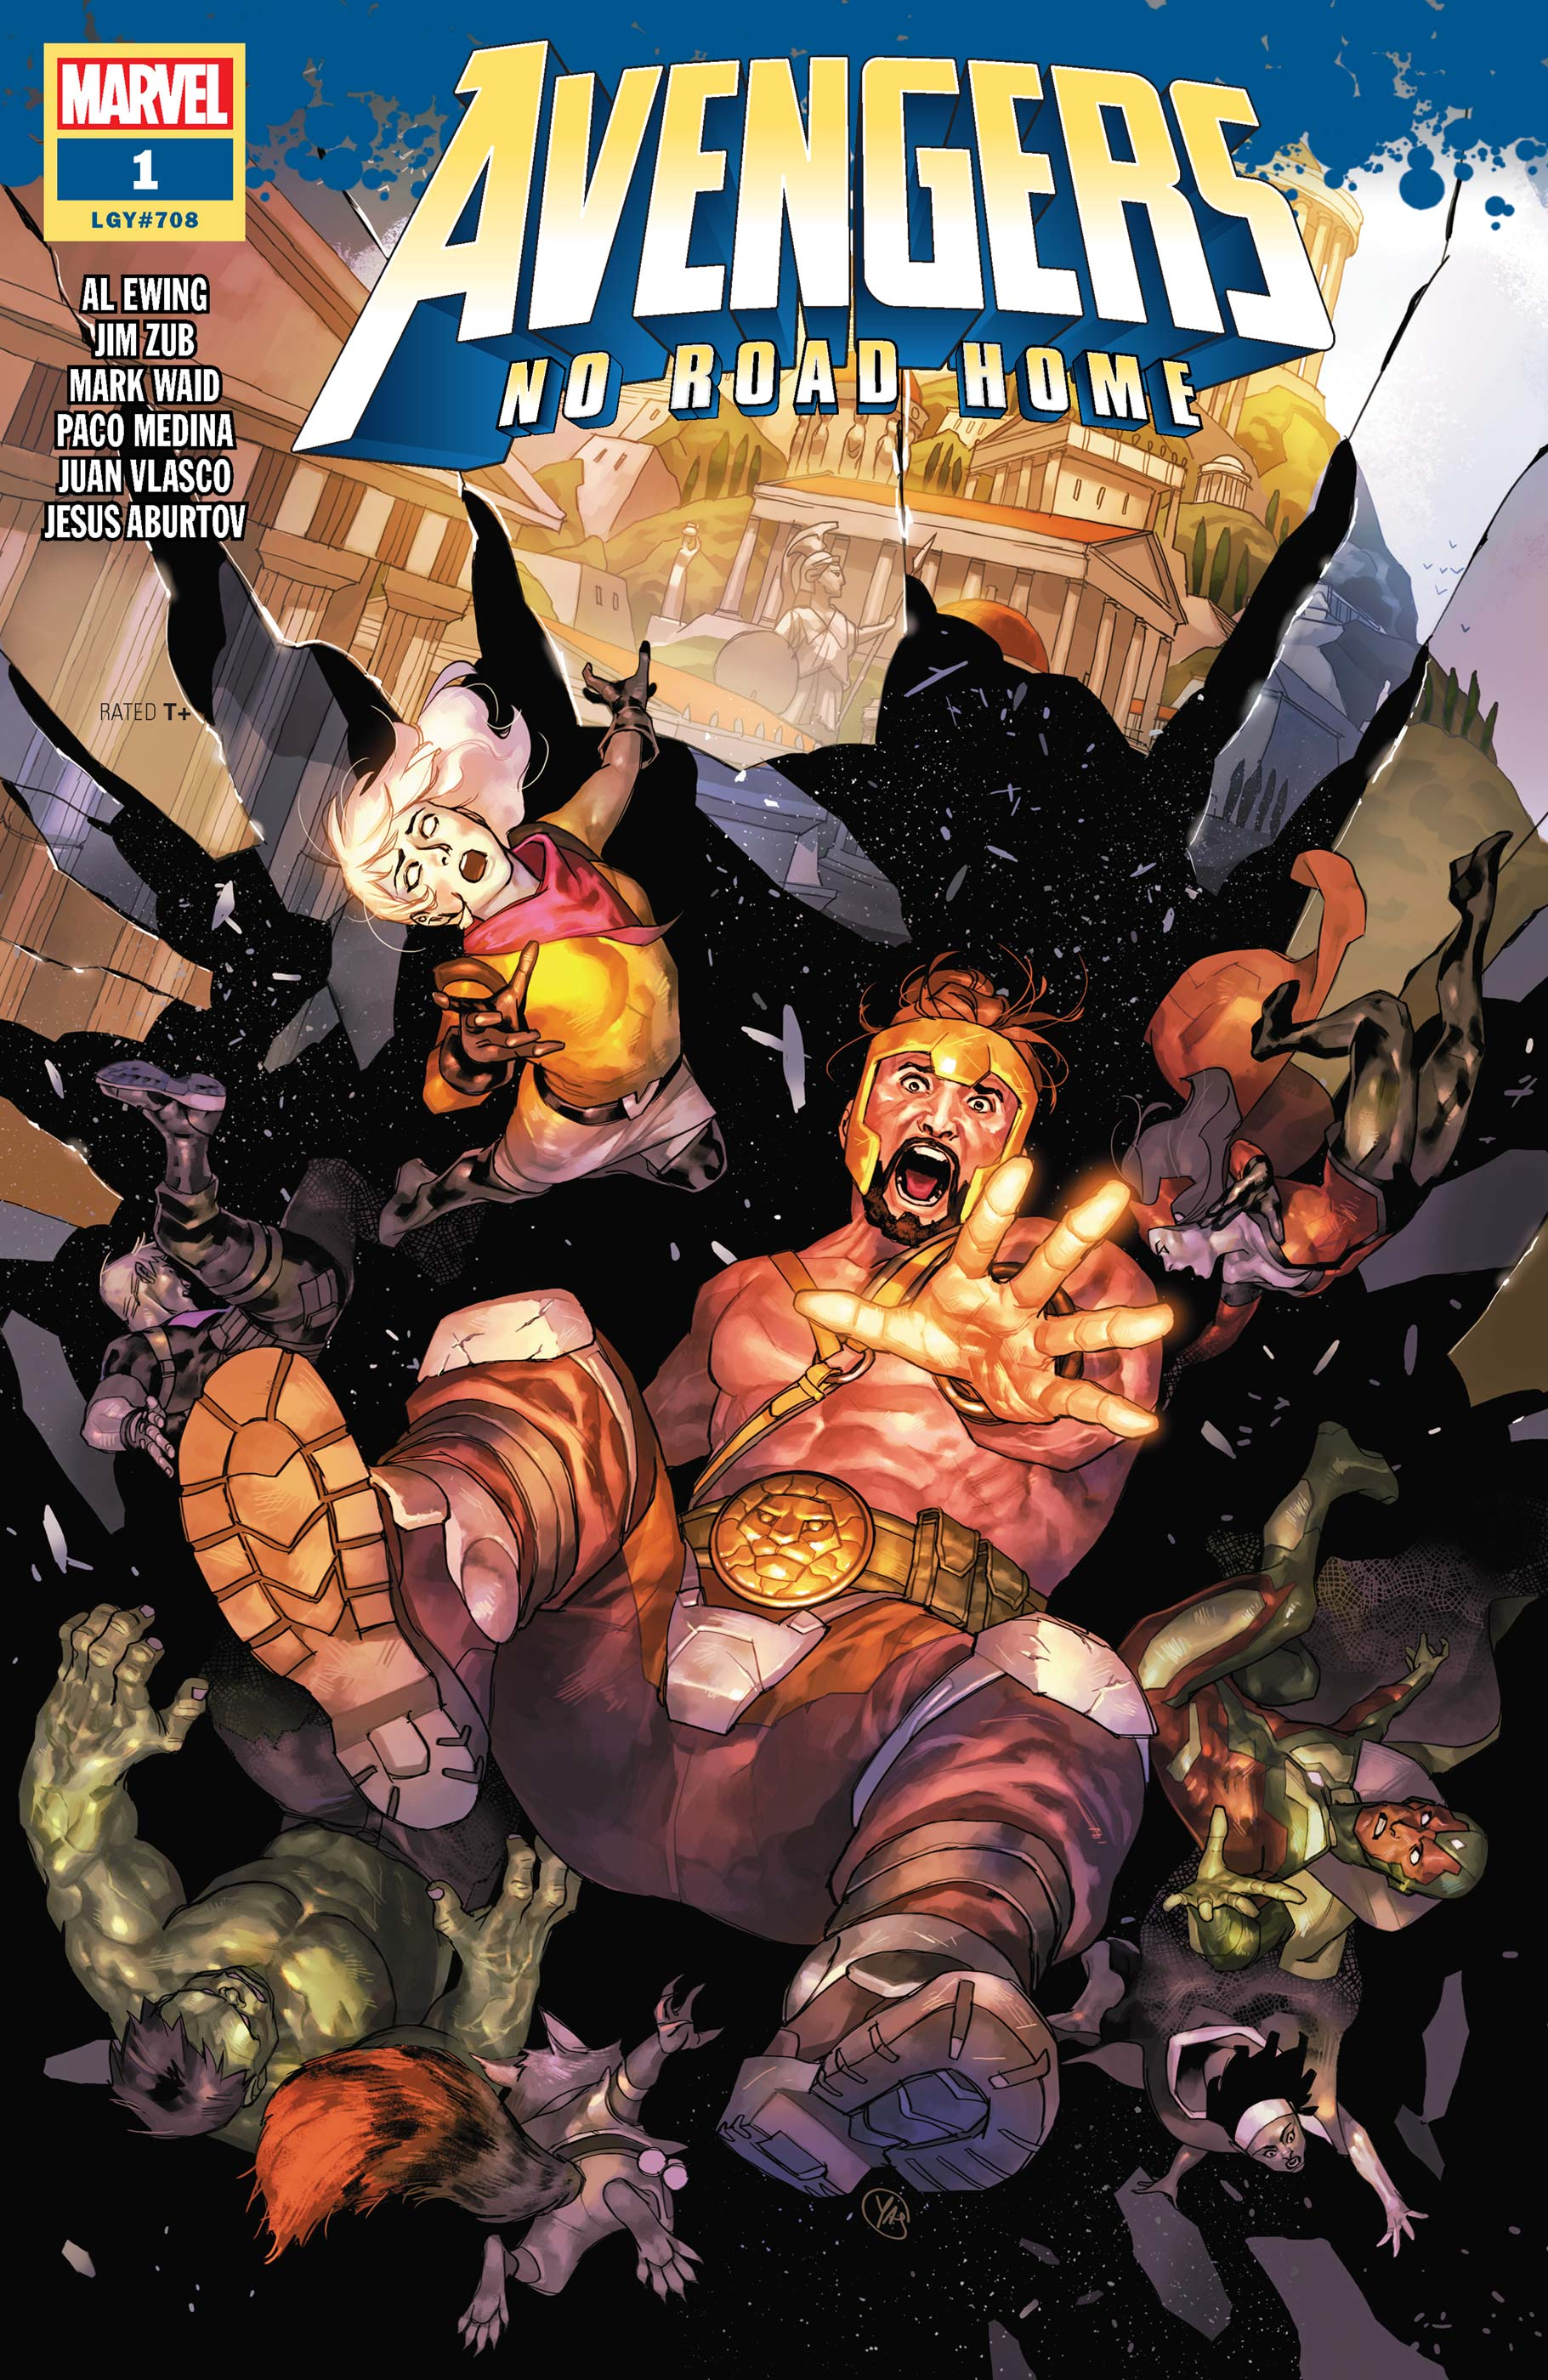 Avengers No Road Home (2019) #1